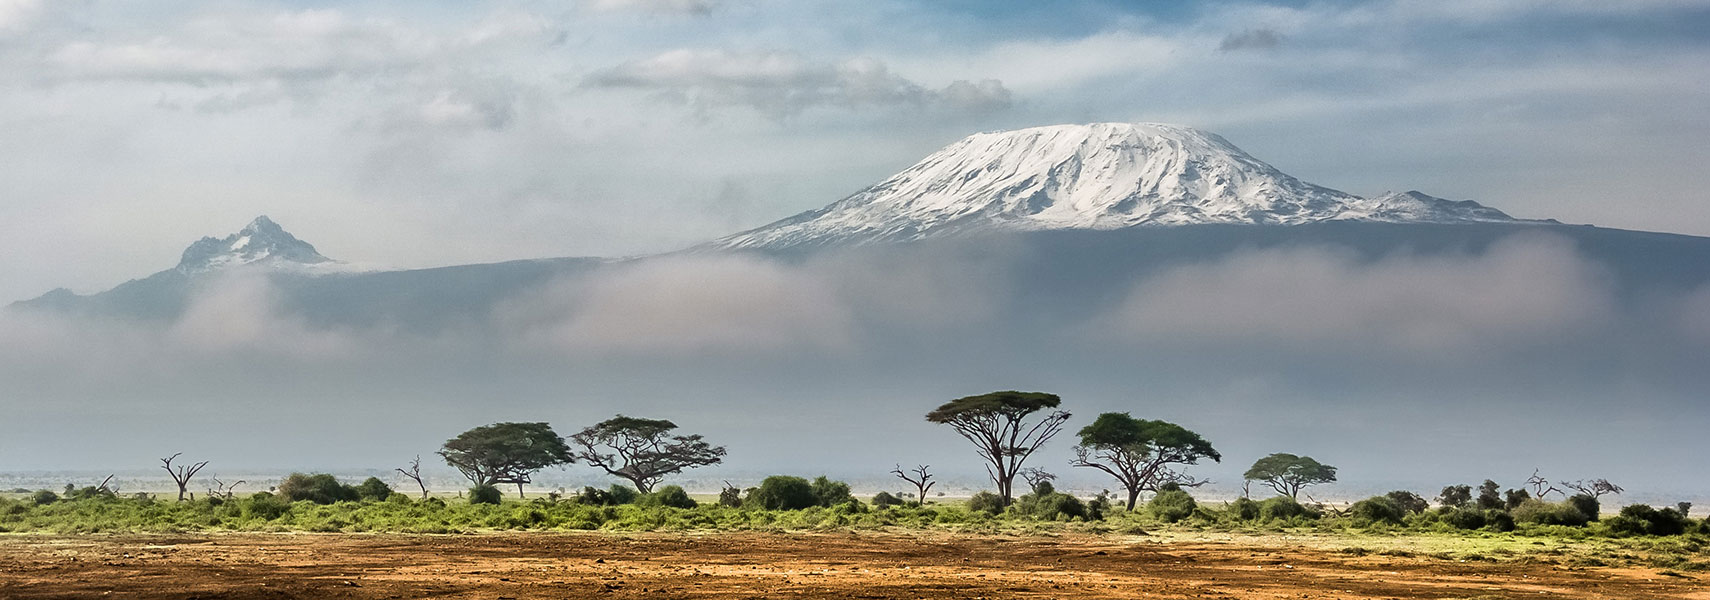 View of Kilimanjaro from Amboseli National Park, Kenya